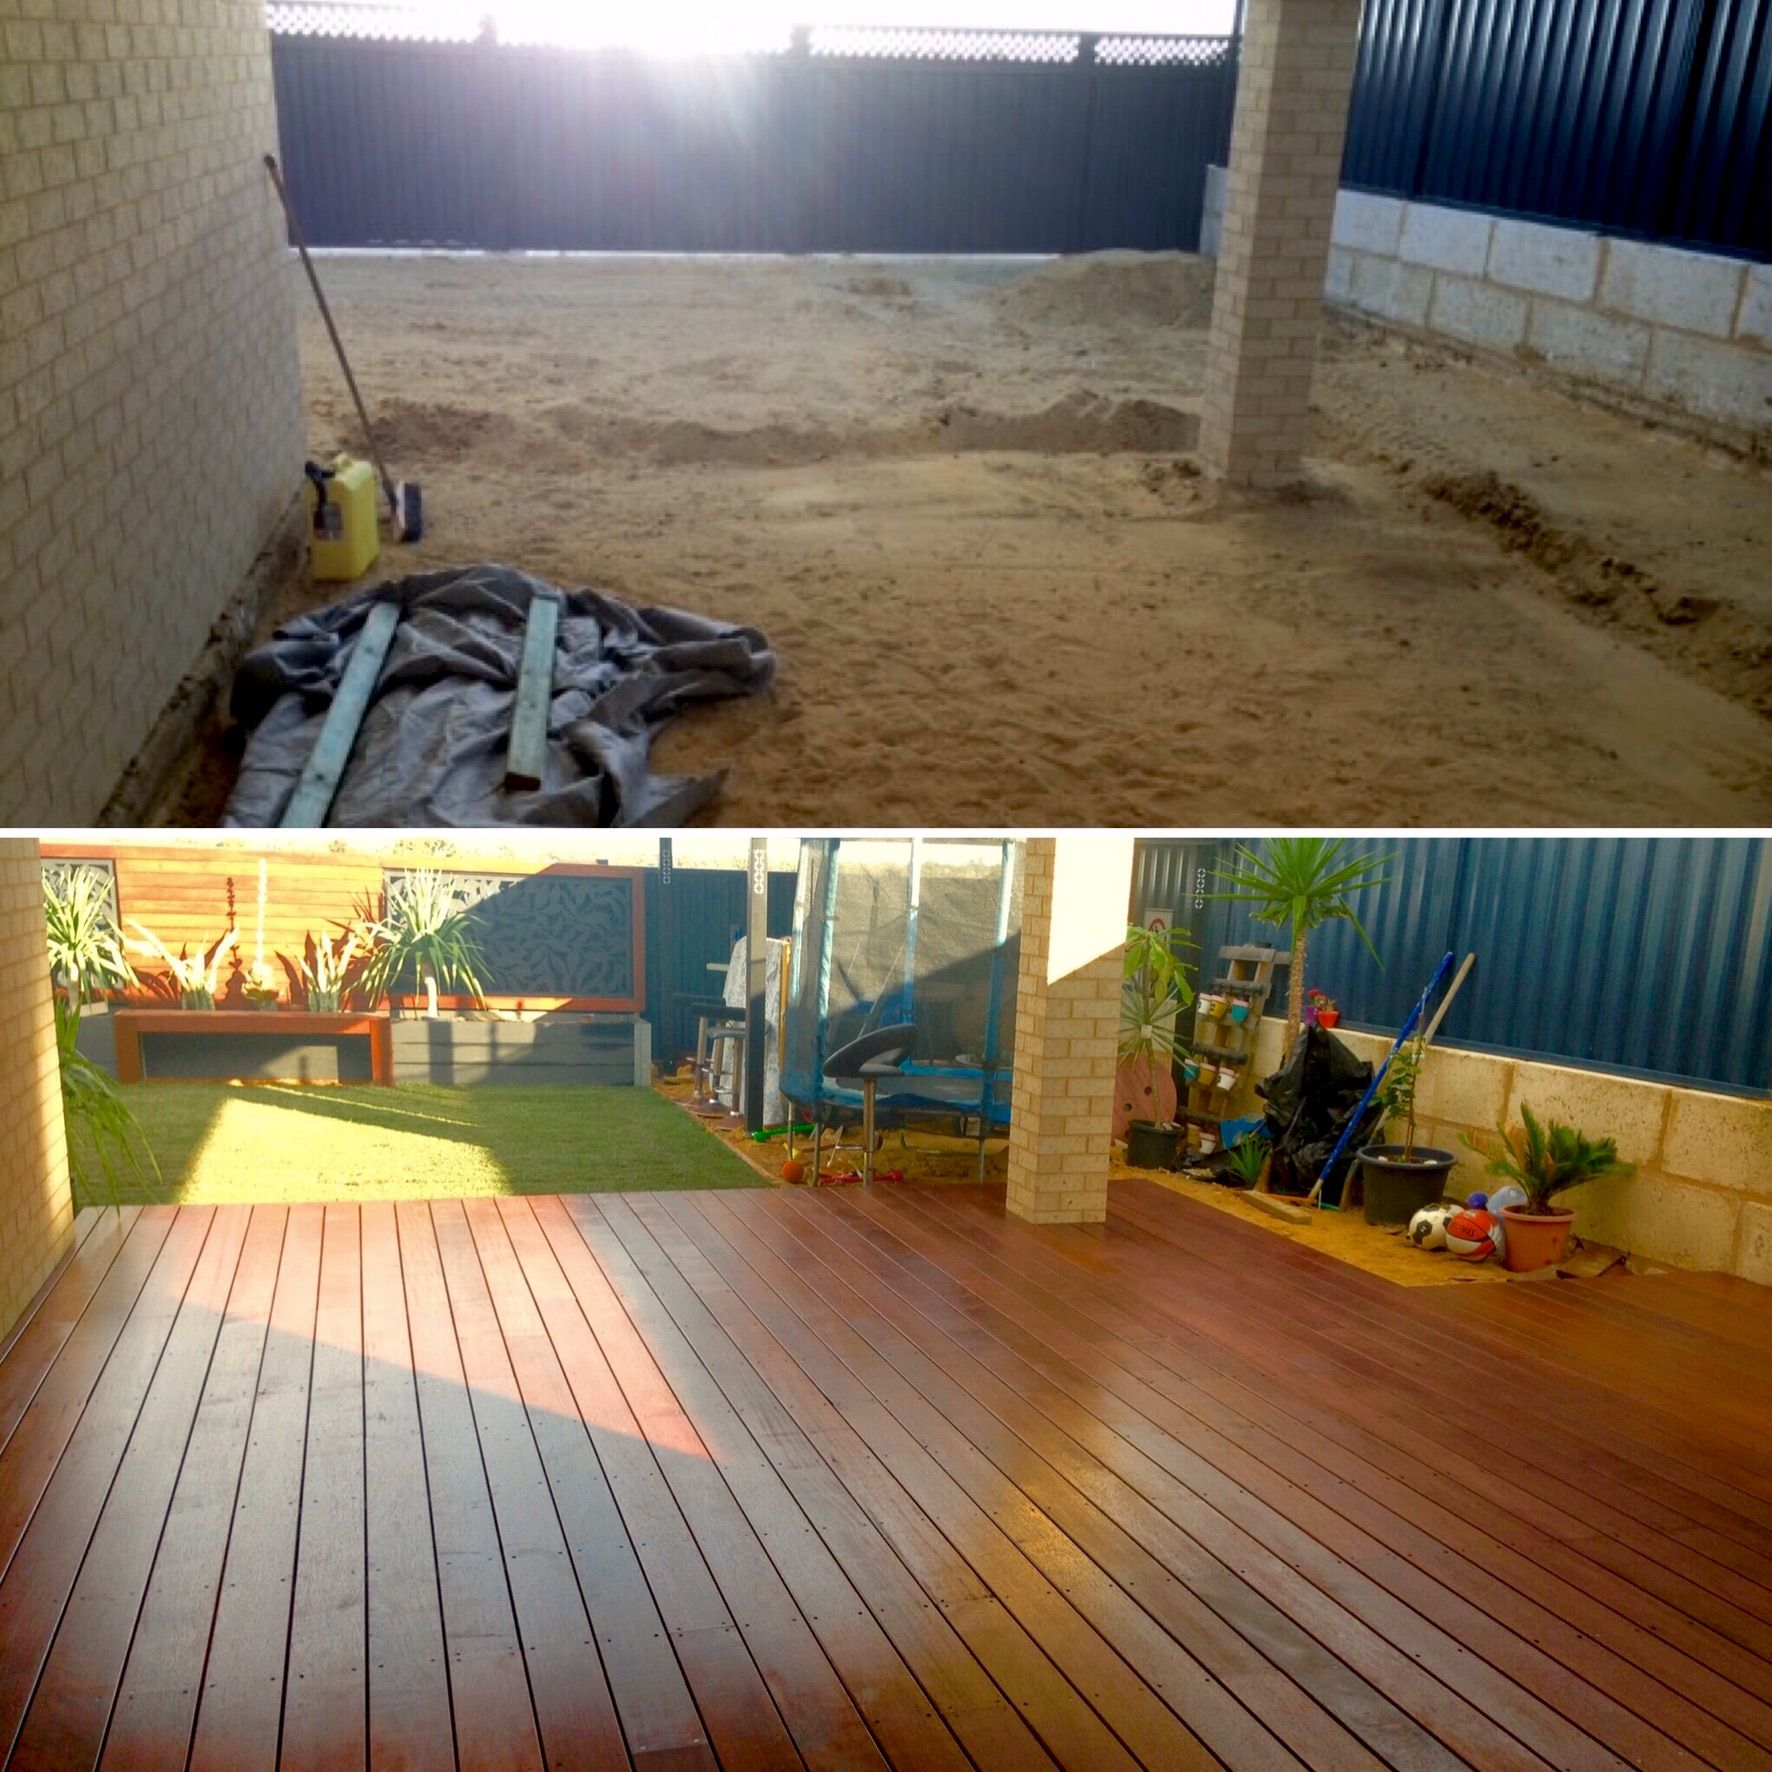 Backyard Transformation Before After: Solved: Backyard Transformation